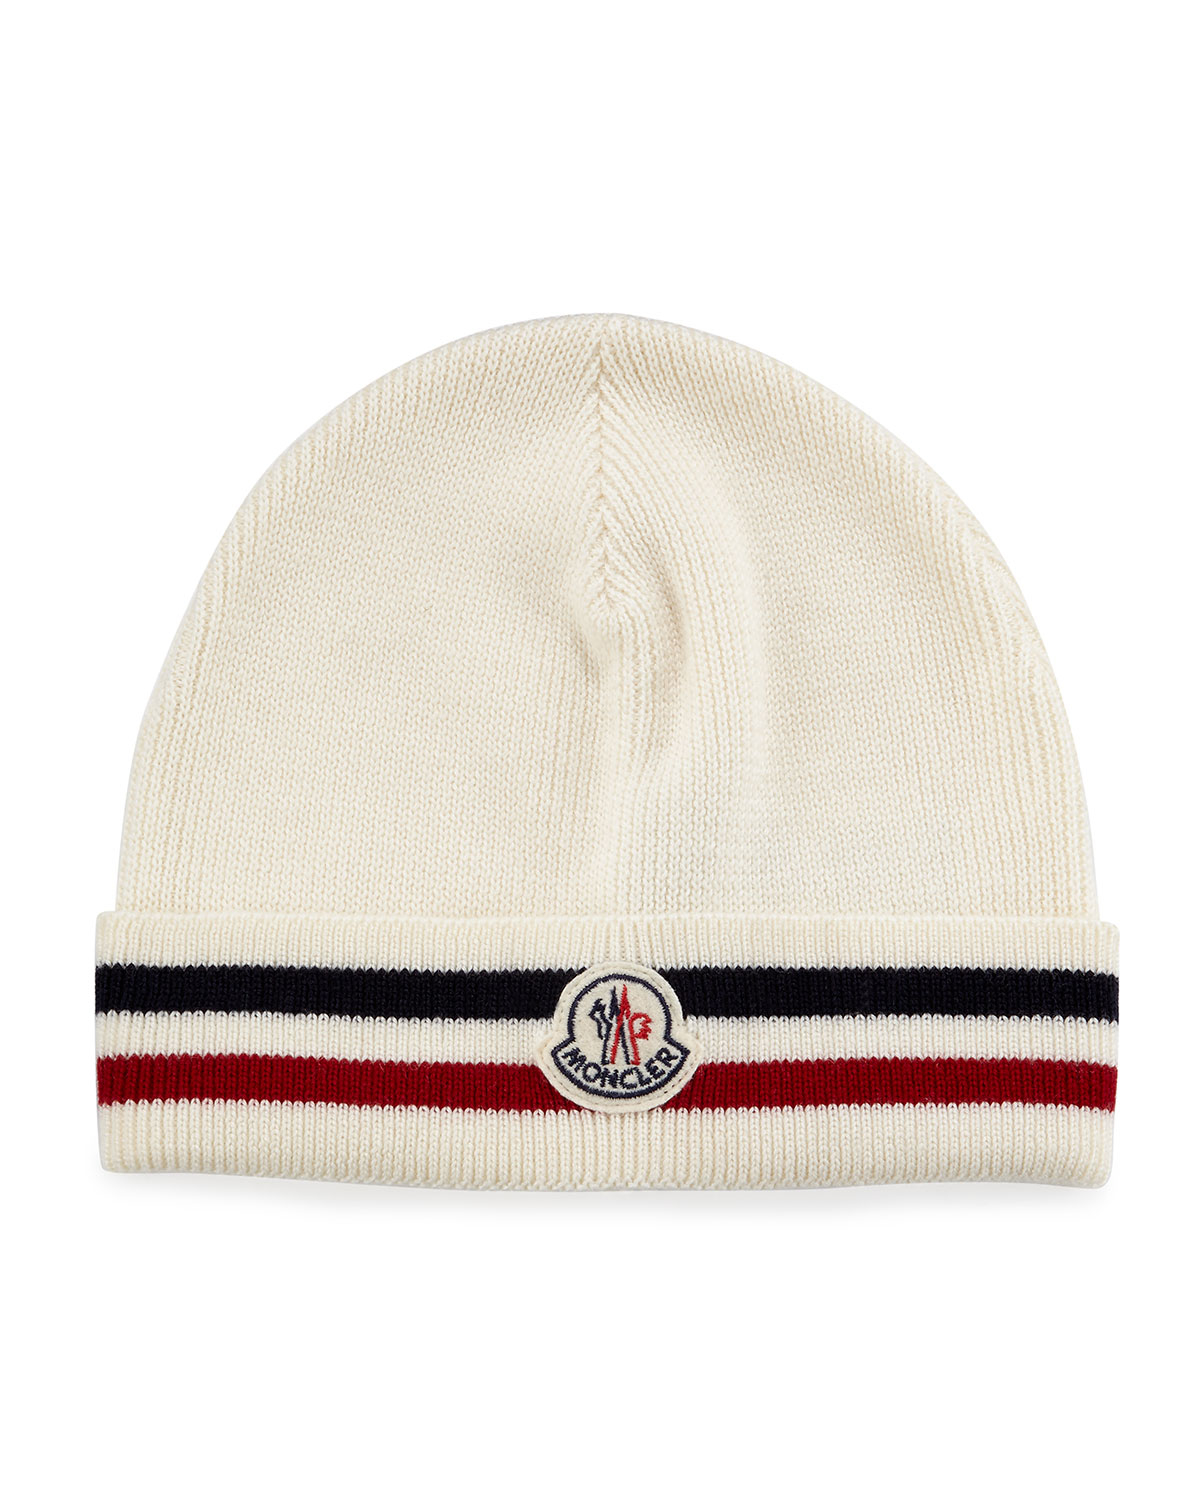 79322a3bb21 Lyst - Moncler Striped Logo Cashmere Beanie Hat in White for Men